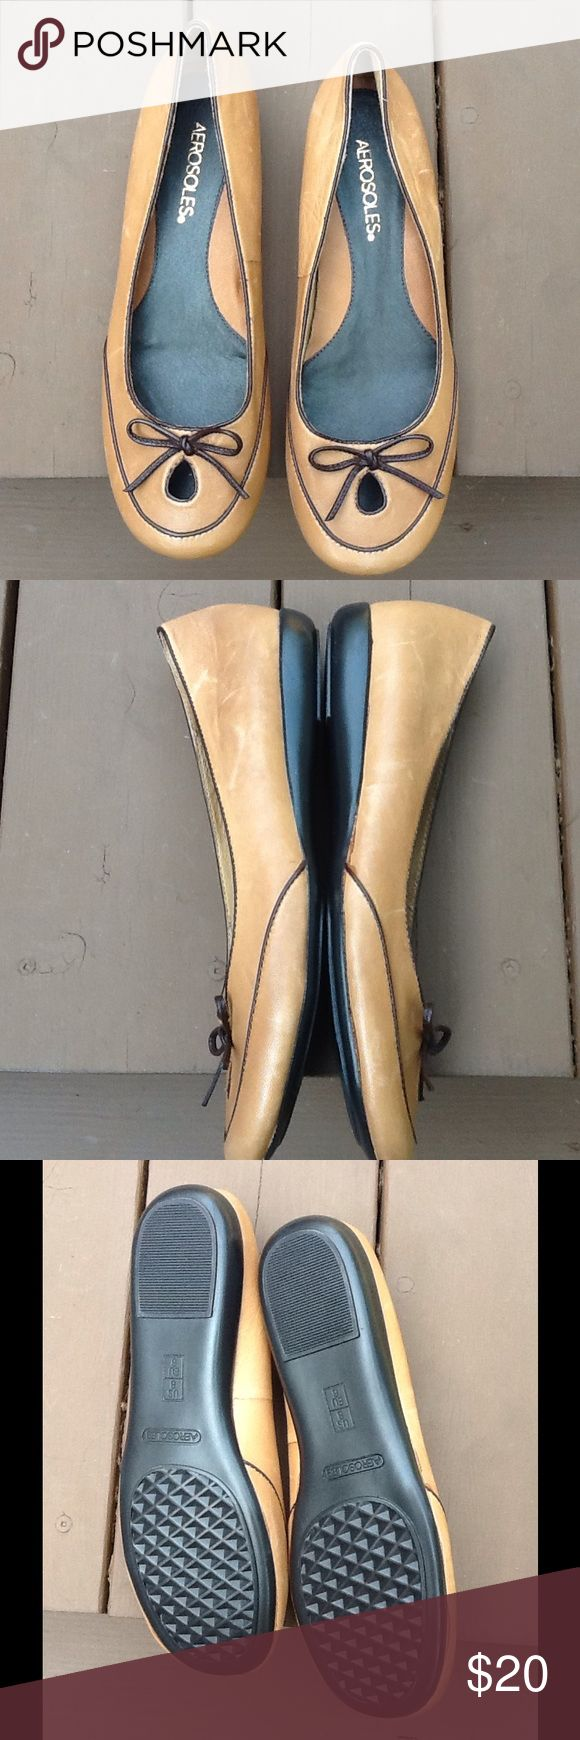 """Aerosoles Prinz Charming Ballet Flats Tan/brown Tan ballet flats with brown trim. Size 8M. Leather upper, synthetic sole.  New and never worn. Leather has a slight """"worn"""" look. AEROSOLES Shoes Flats & Loafers"""